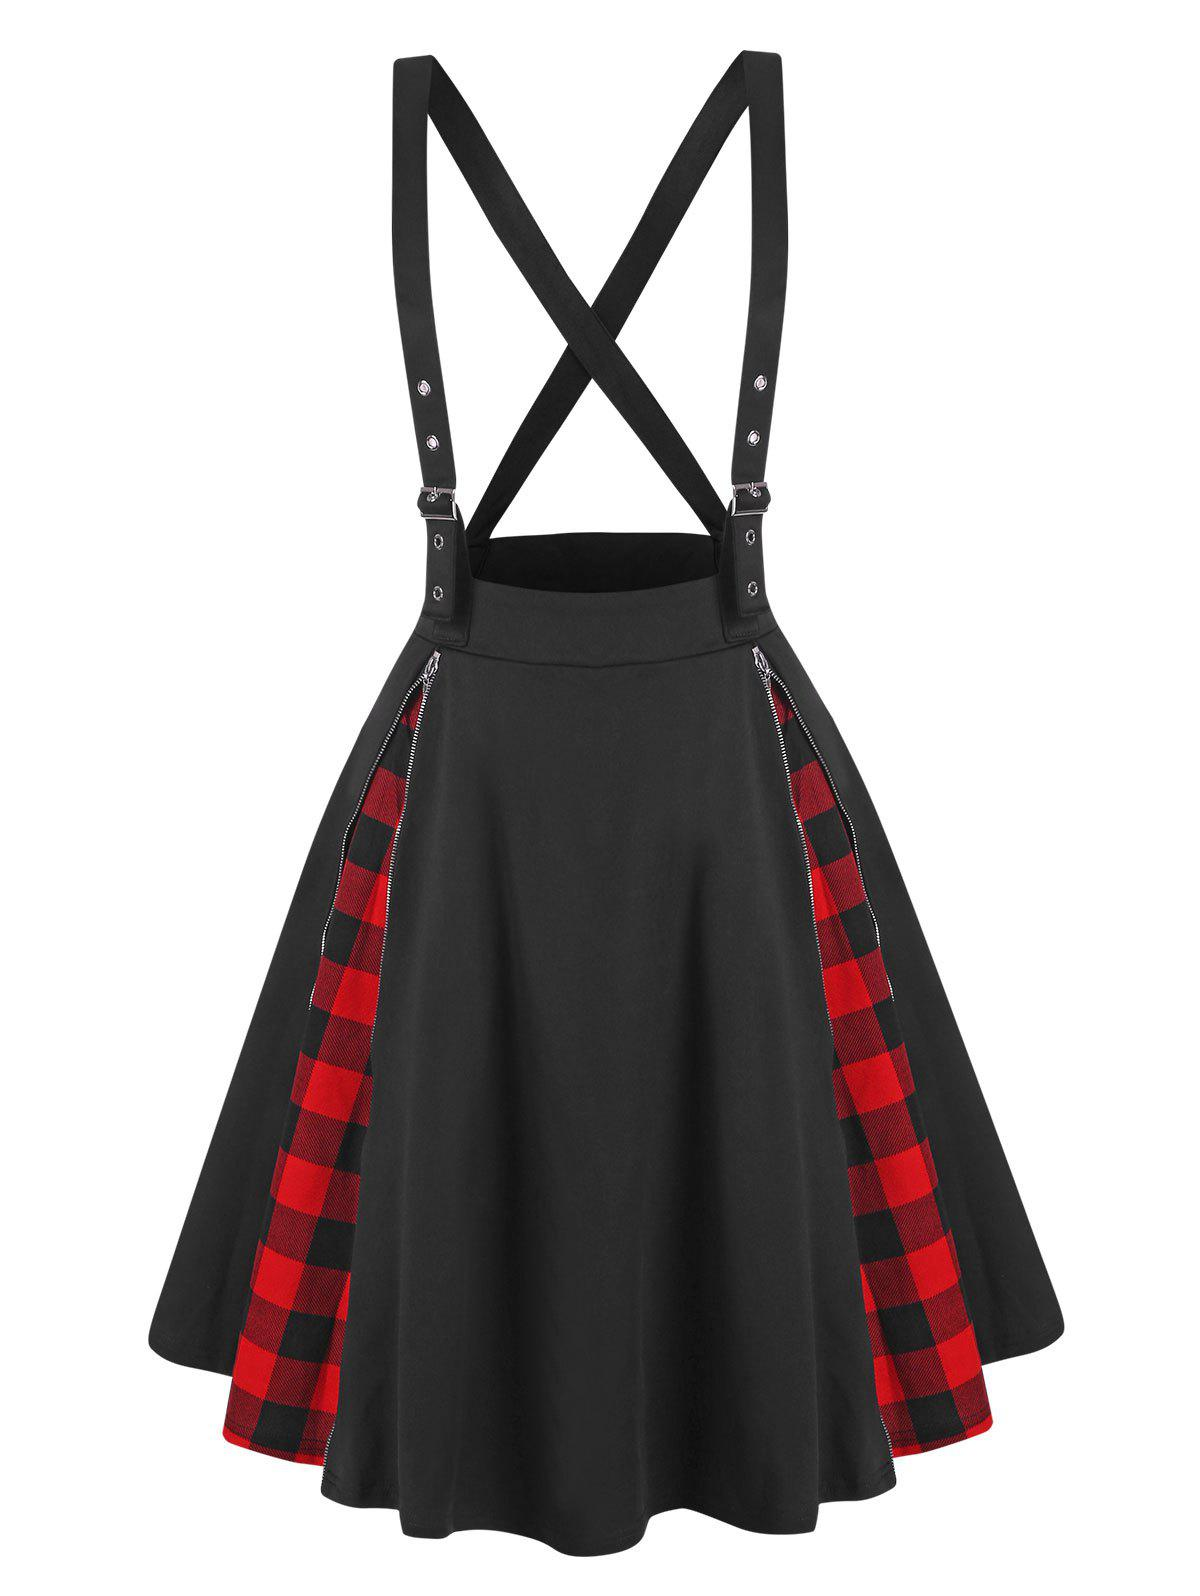 Affordable Plaid Panel Zippered Criss Cross Suspender Skirt